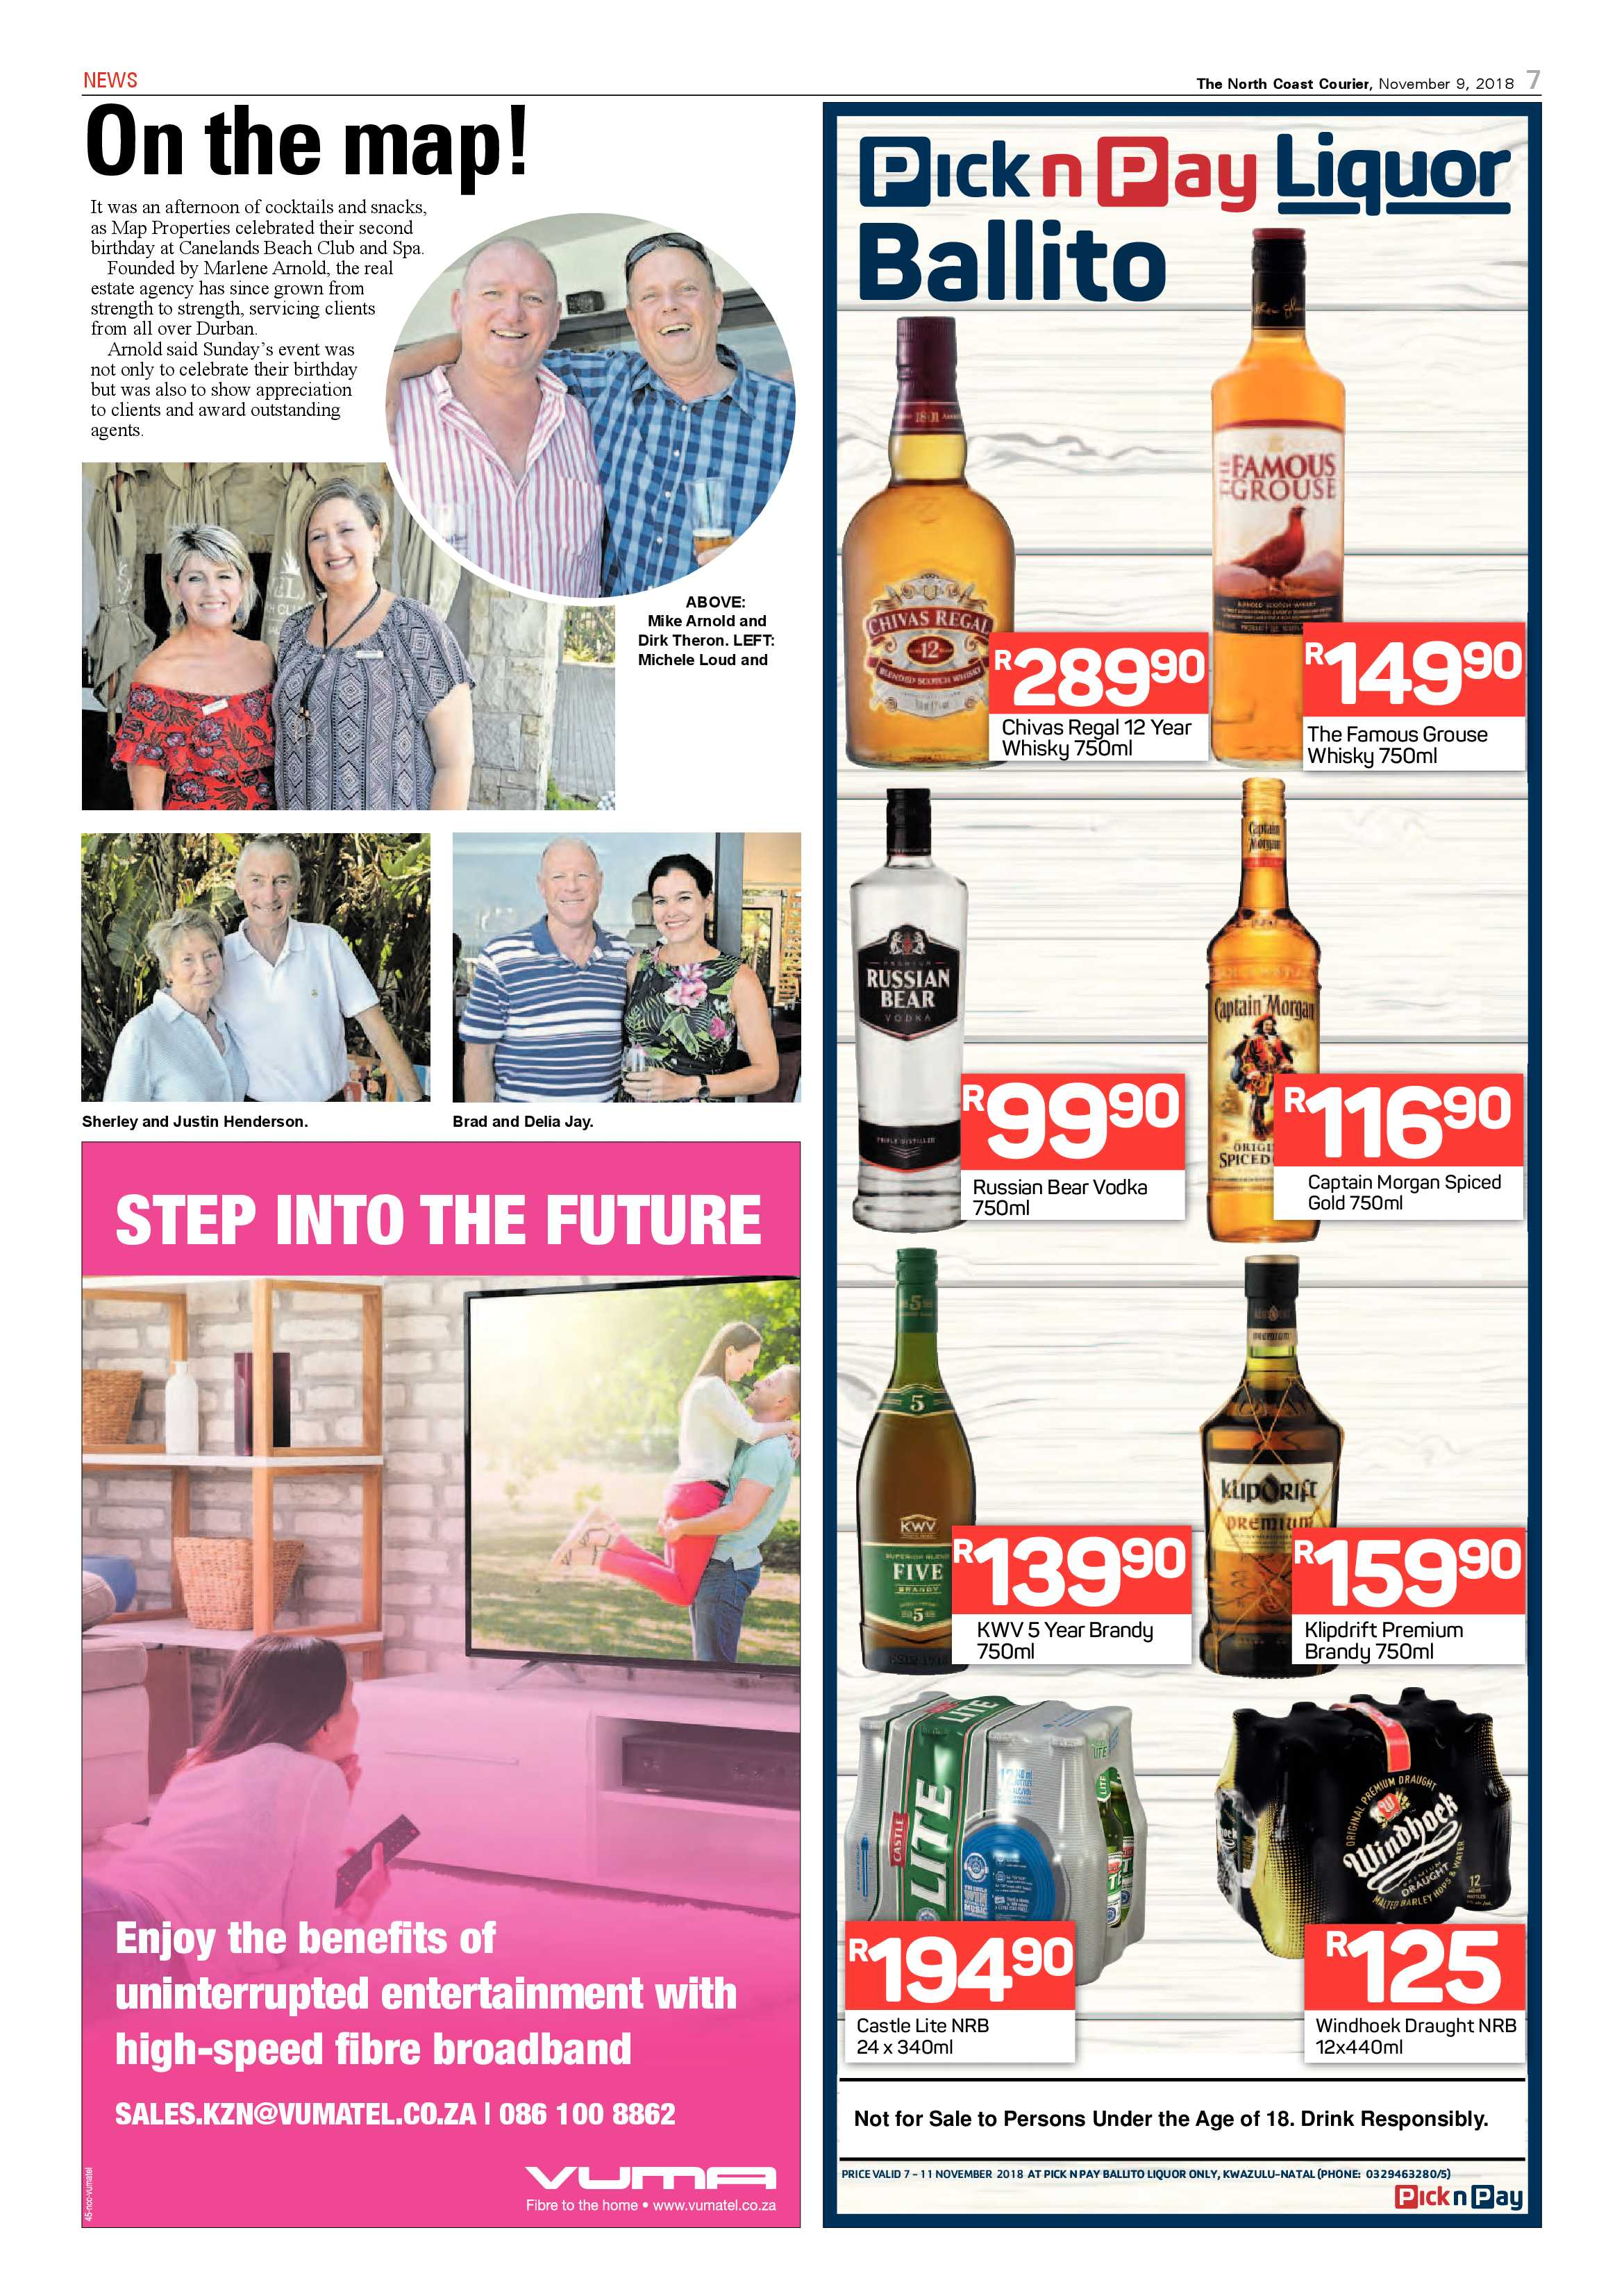 north-coast-courier-09-november-2018-epapers-page-7